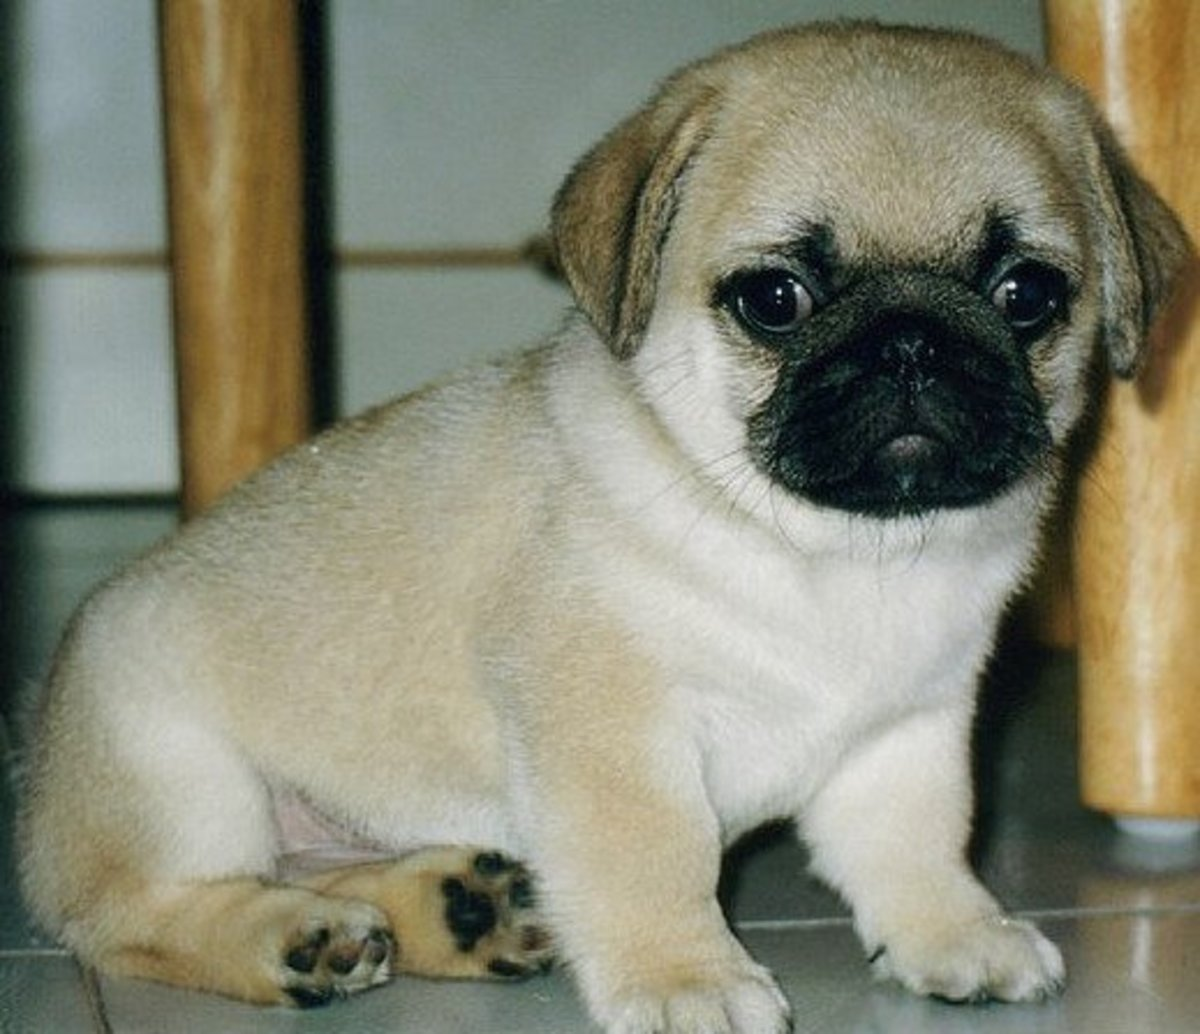 Baby Pug Pic Courtesy Of Ward Kadel On Flickr Licensed Under Creative Commons